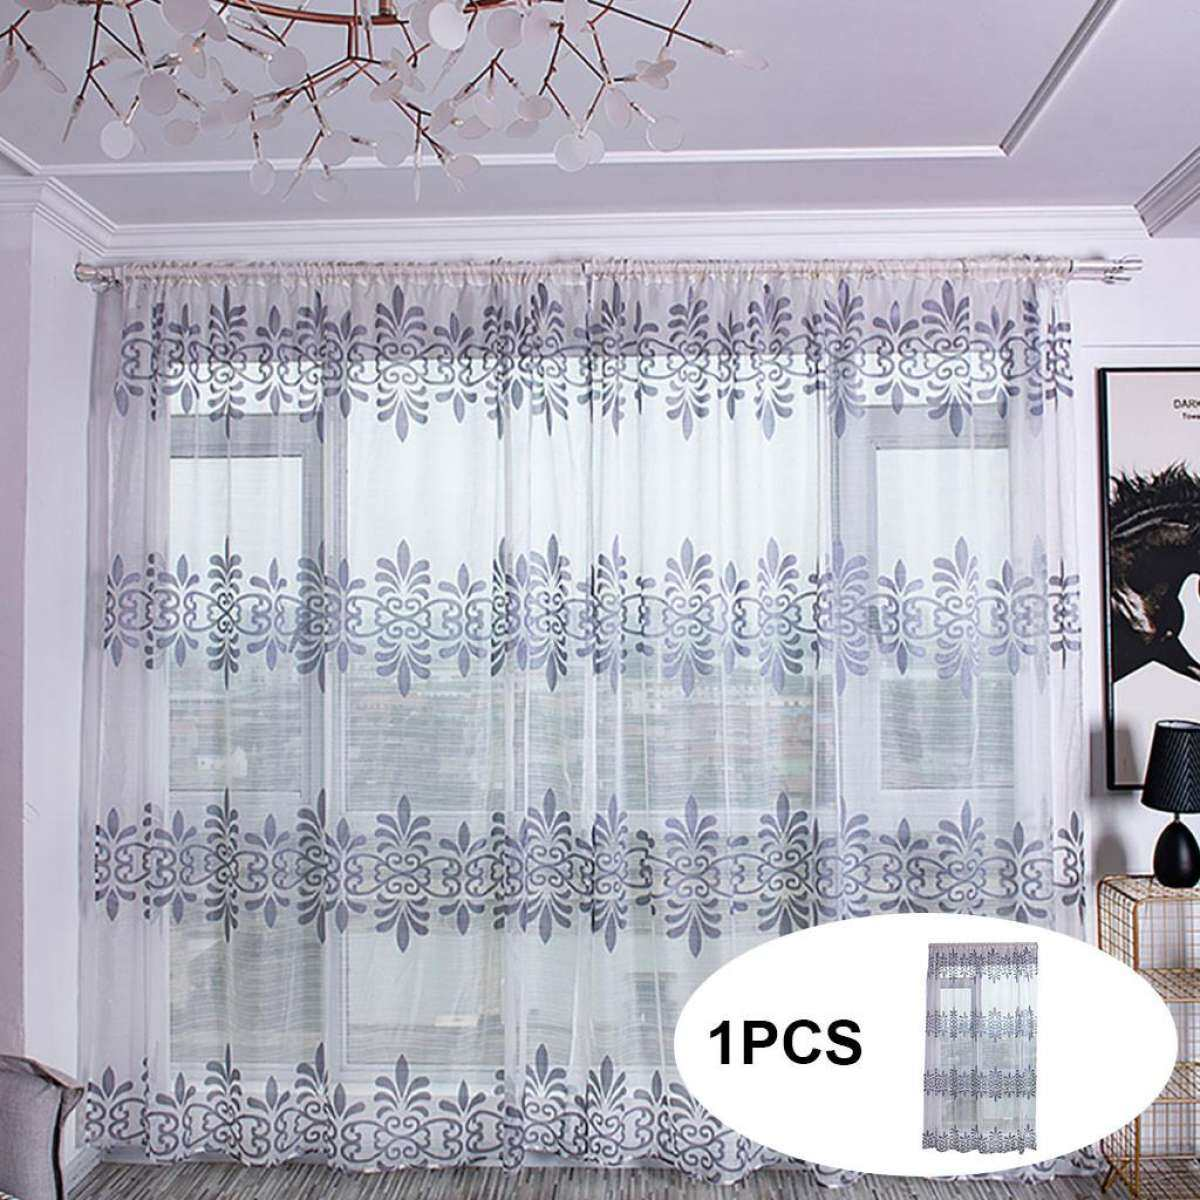 Ackeryshop Sheer Curtain Tulle Window Treatment Voile Drape Valance Fabric Textiles Window Decoration Sticker Curtains Blinds Glass Tint For Home Polyester Grey Lazada